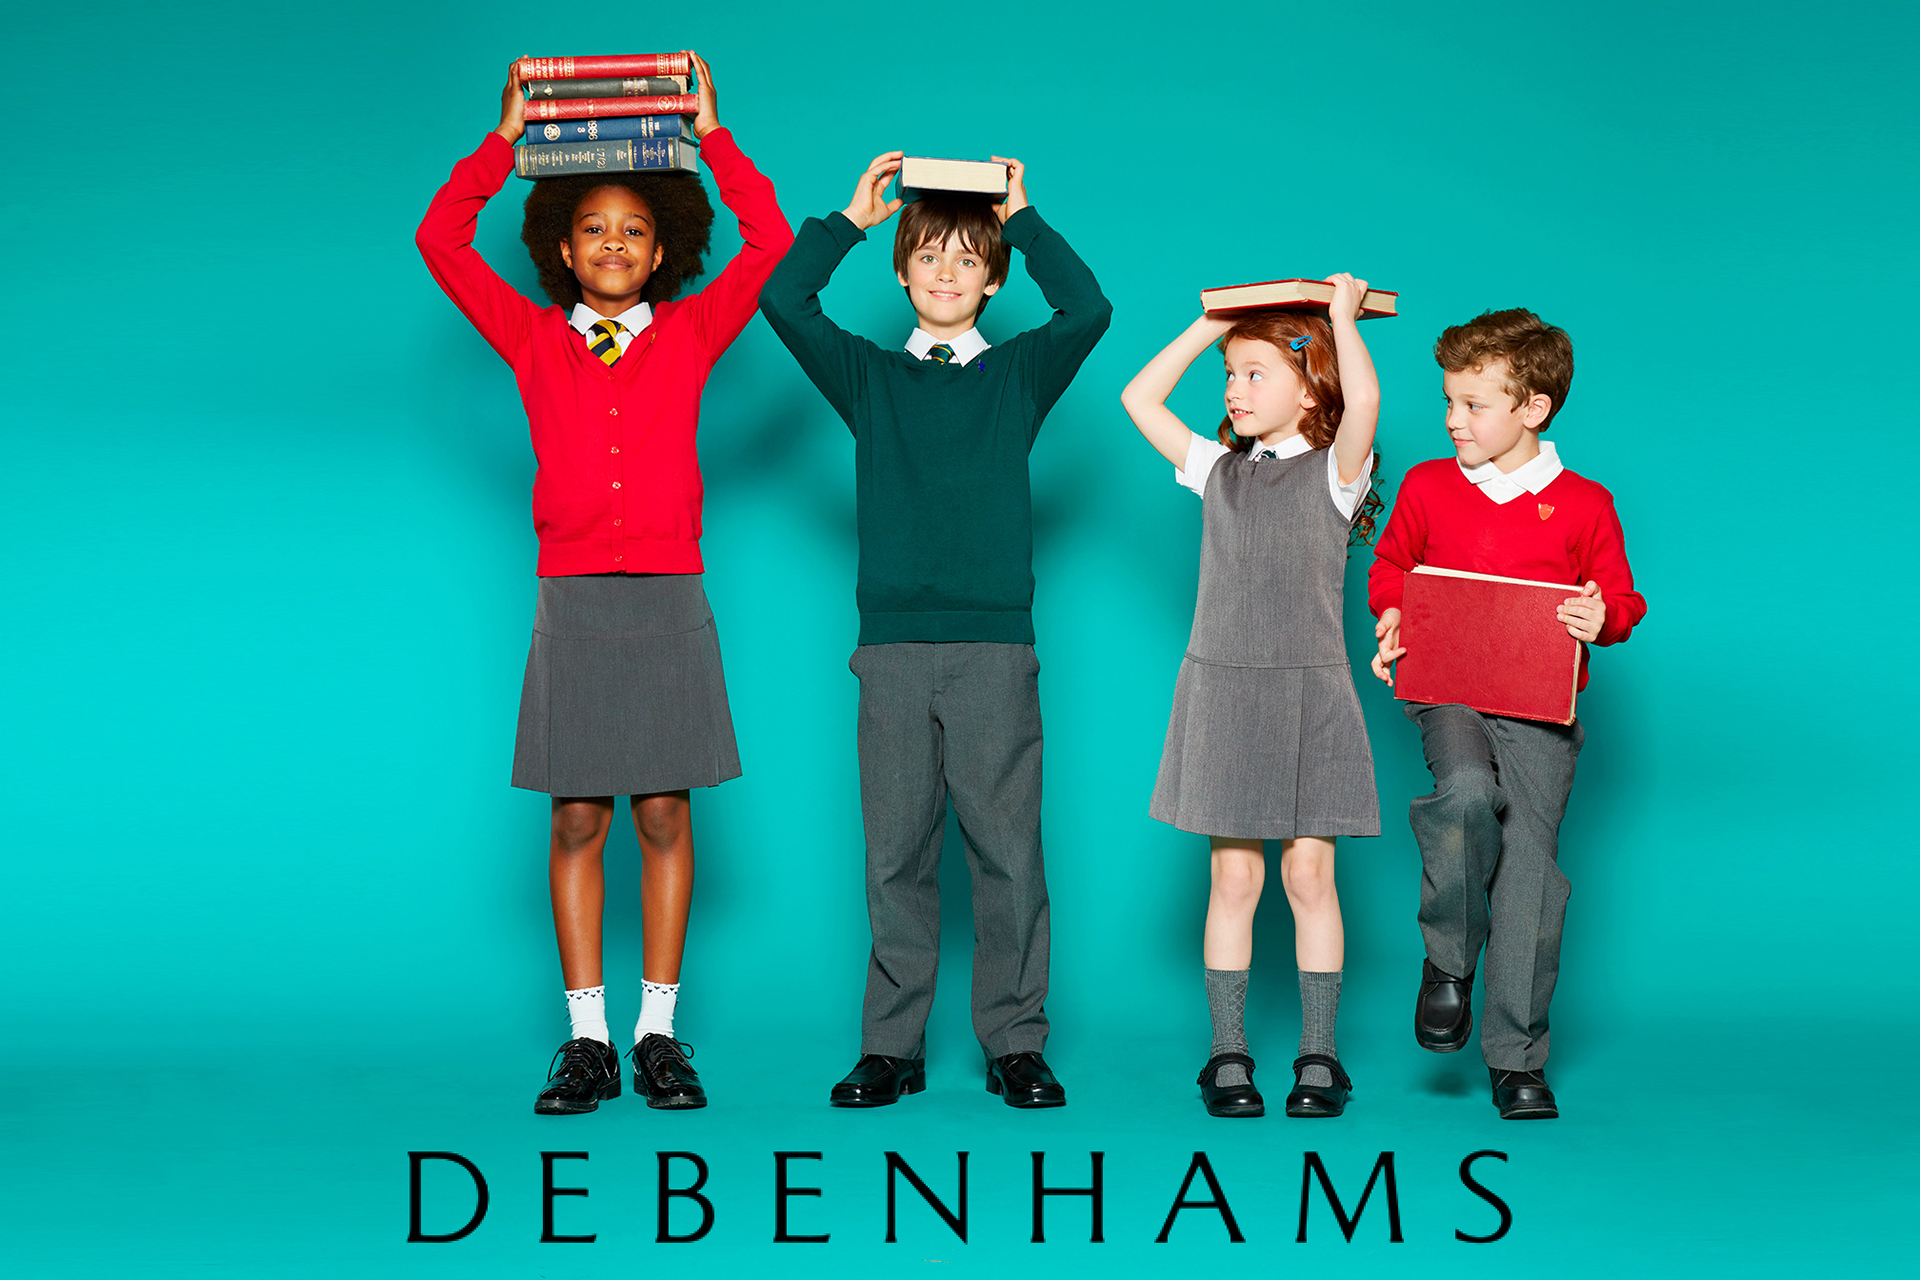 Debenhams kids fashion school campaign 2